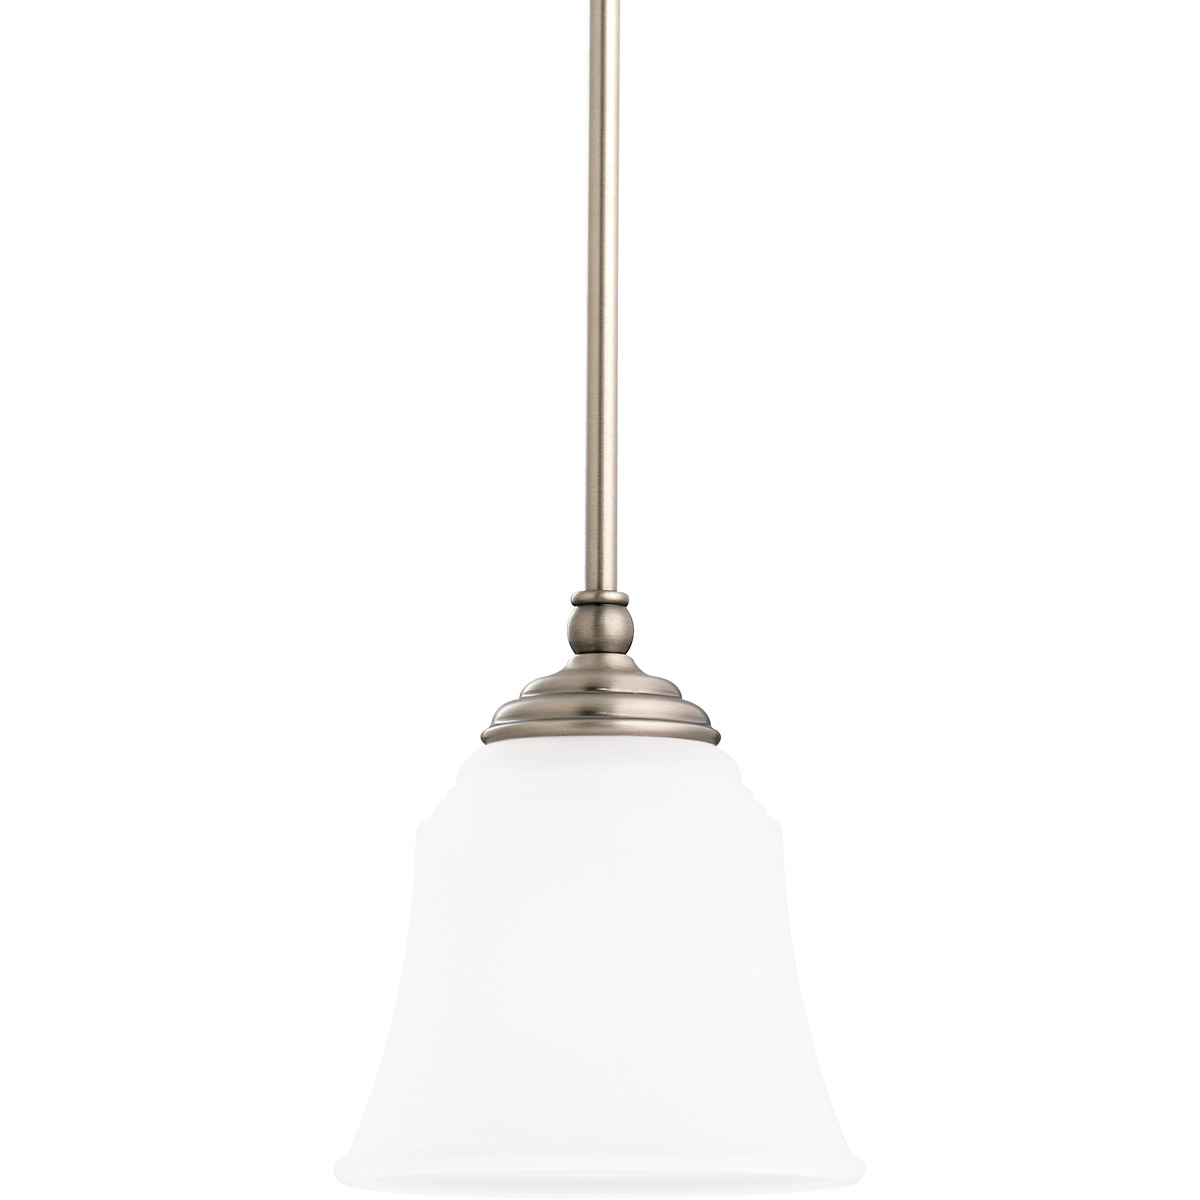 Sea Gull Lighting Parkview 1 Light Mini Pendant in Antique Brushed Nickel 61380-965 photo